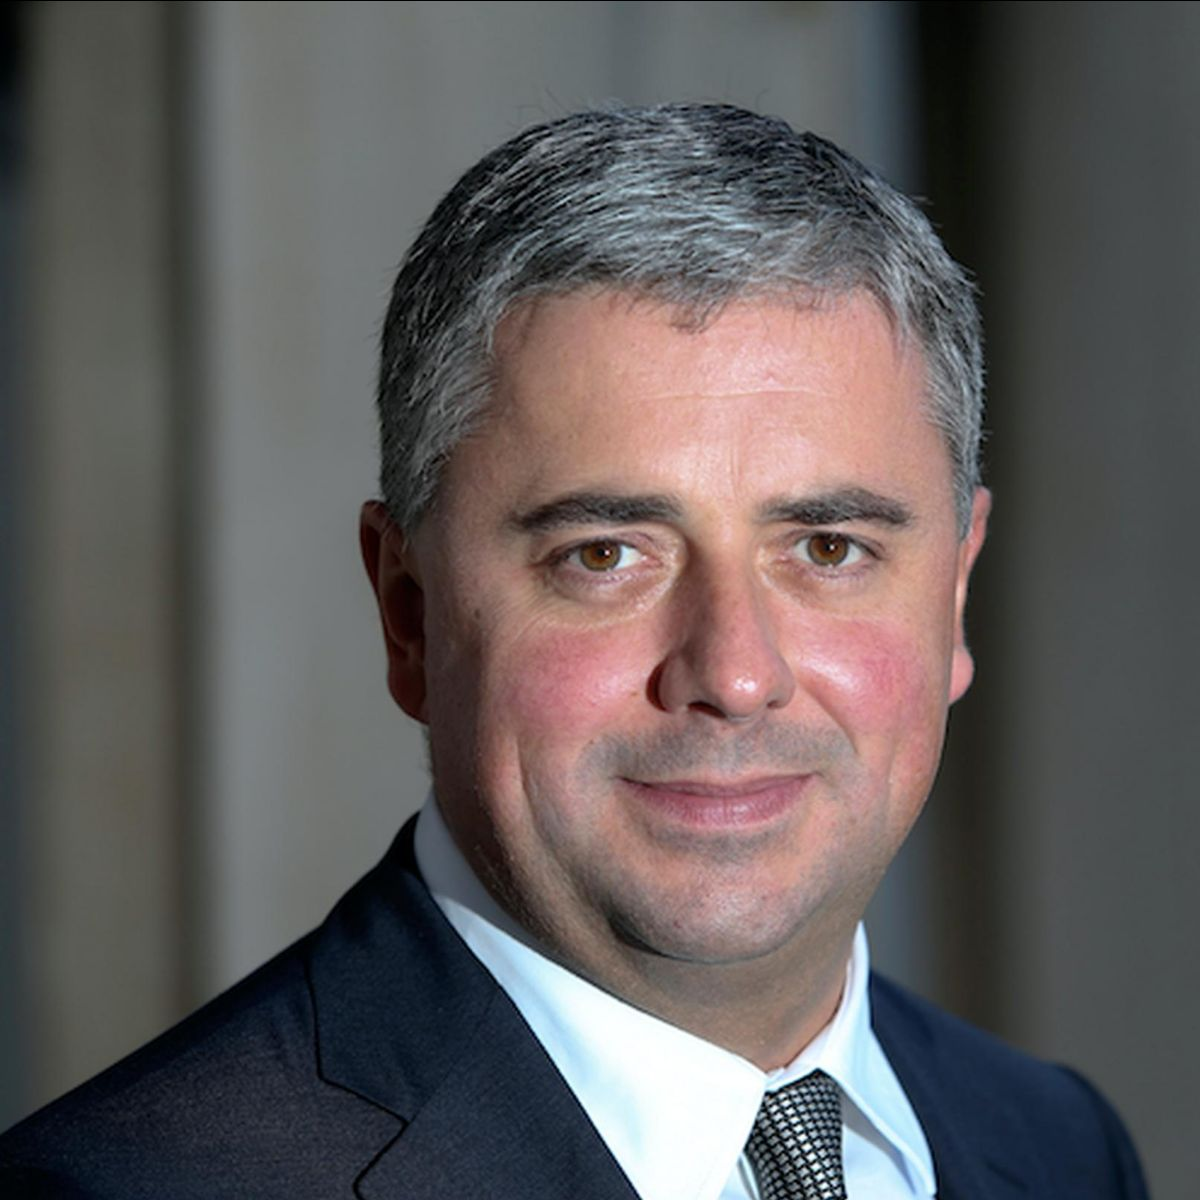 Gatwick Airport Chief Executive Officer Stewart Wingate